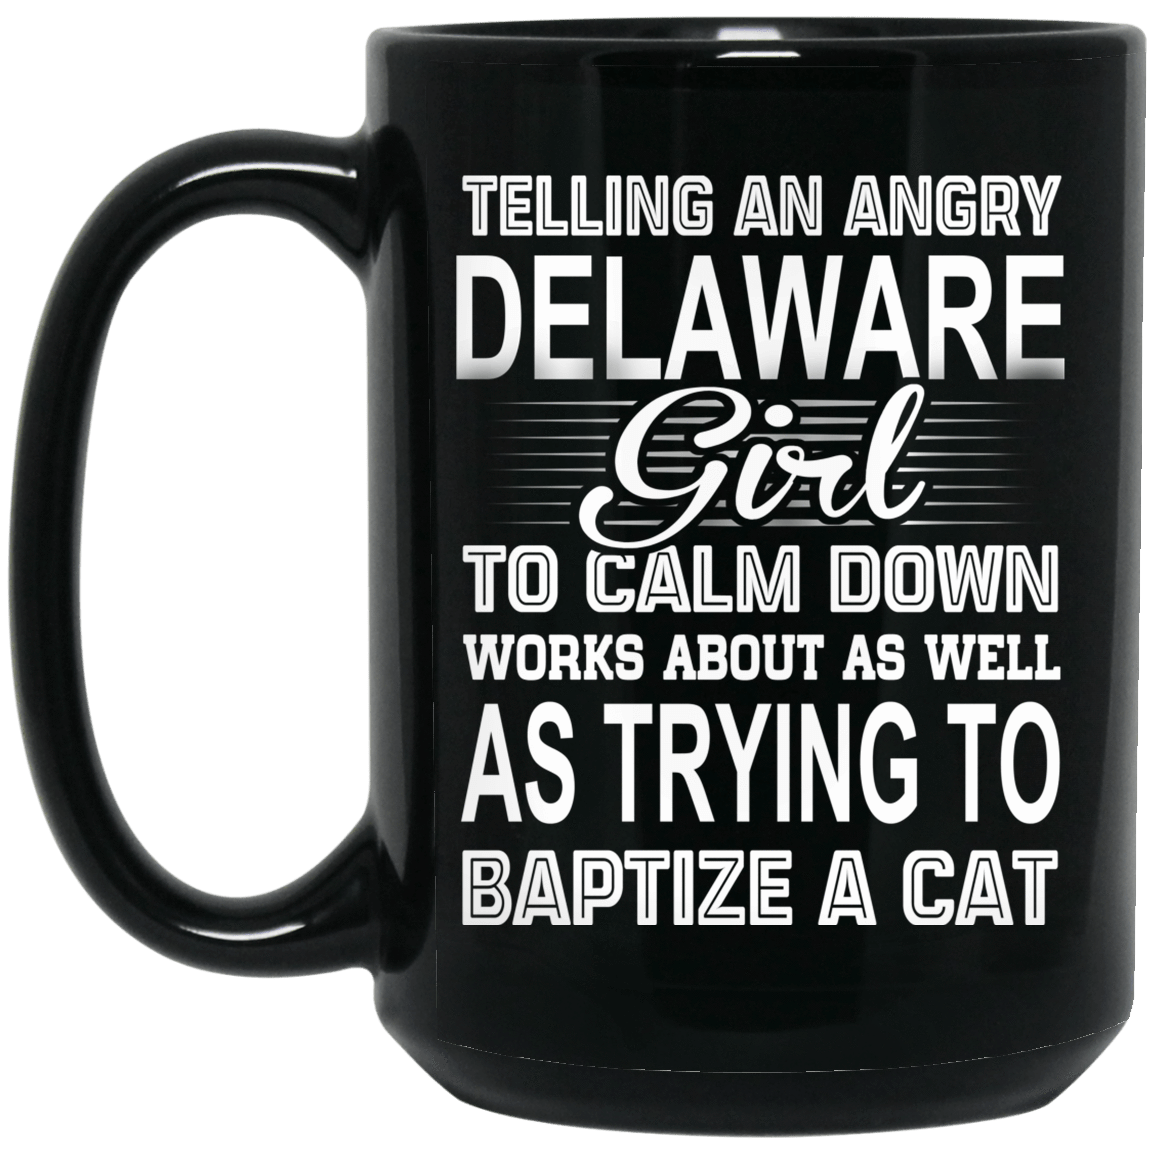 Telling An Angry Delaware Girl To Calm Down Works About As Well As Trying To Baptize A Cat Mug 1066-10182-76151917-49311 - Tee Ript